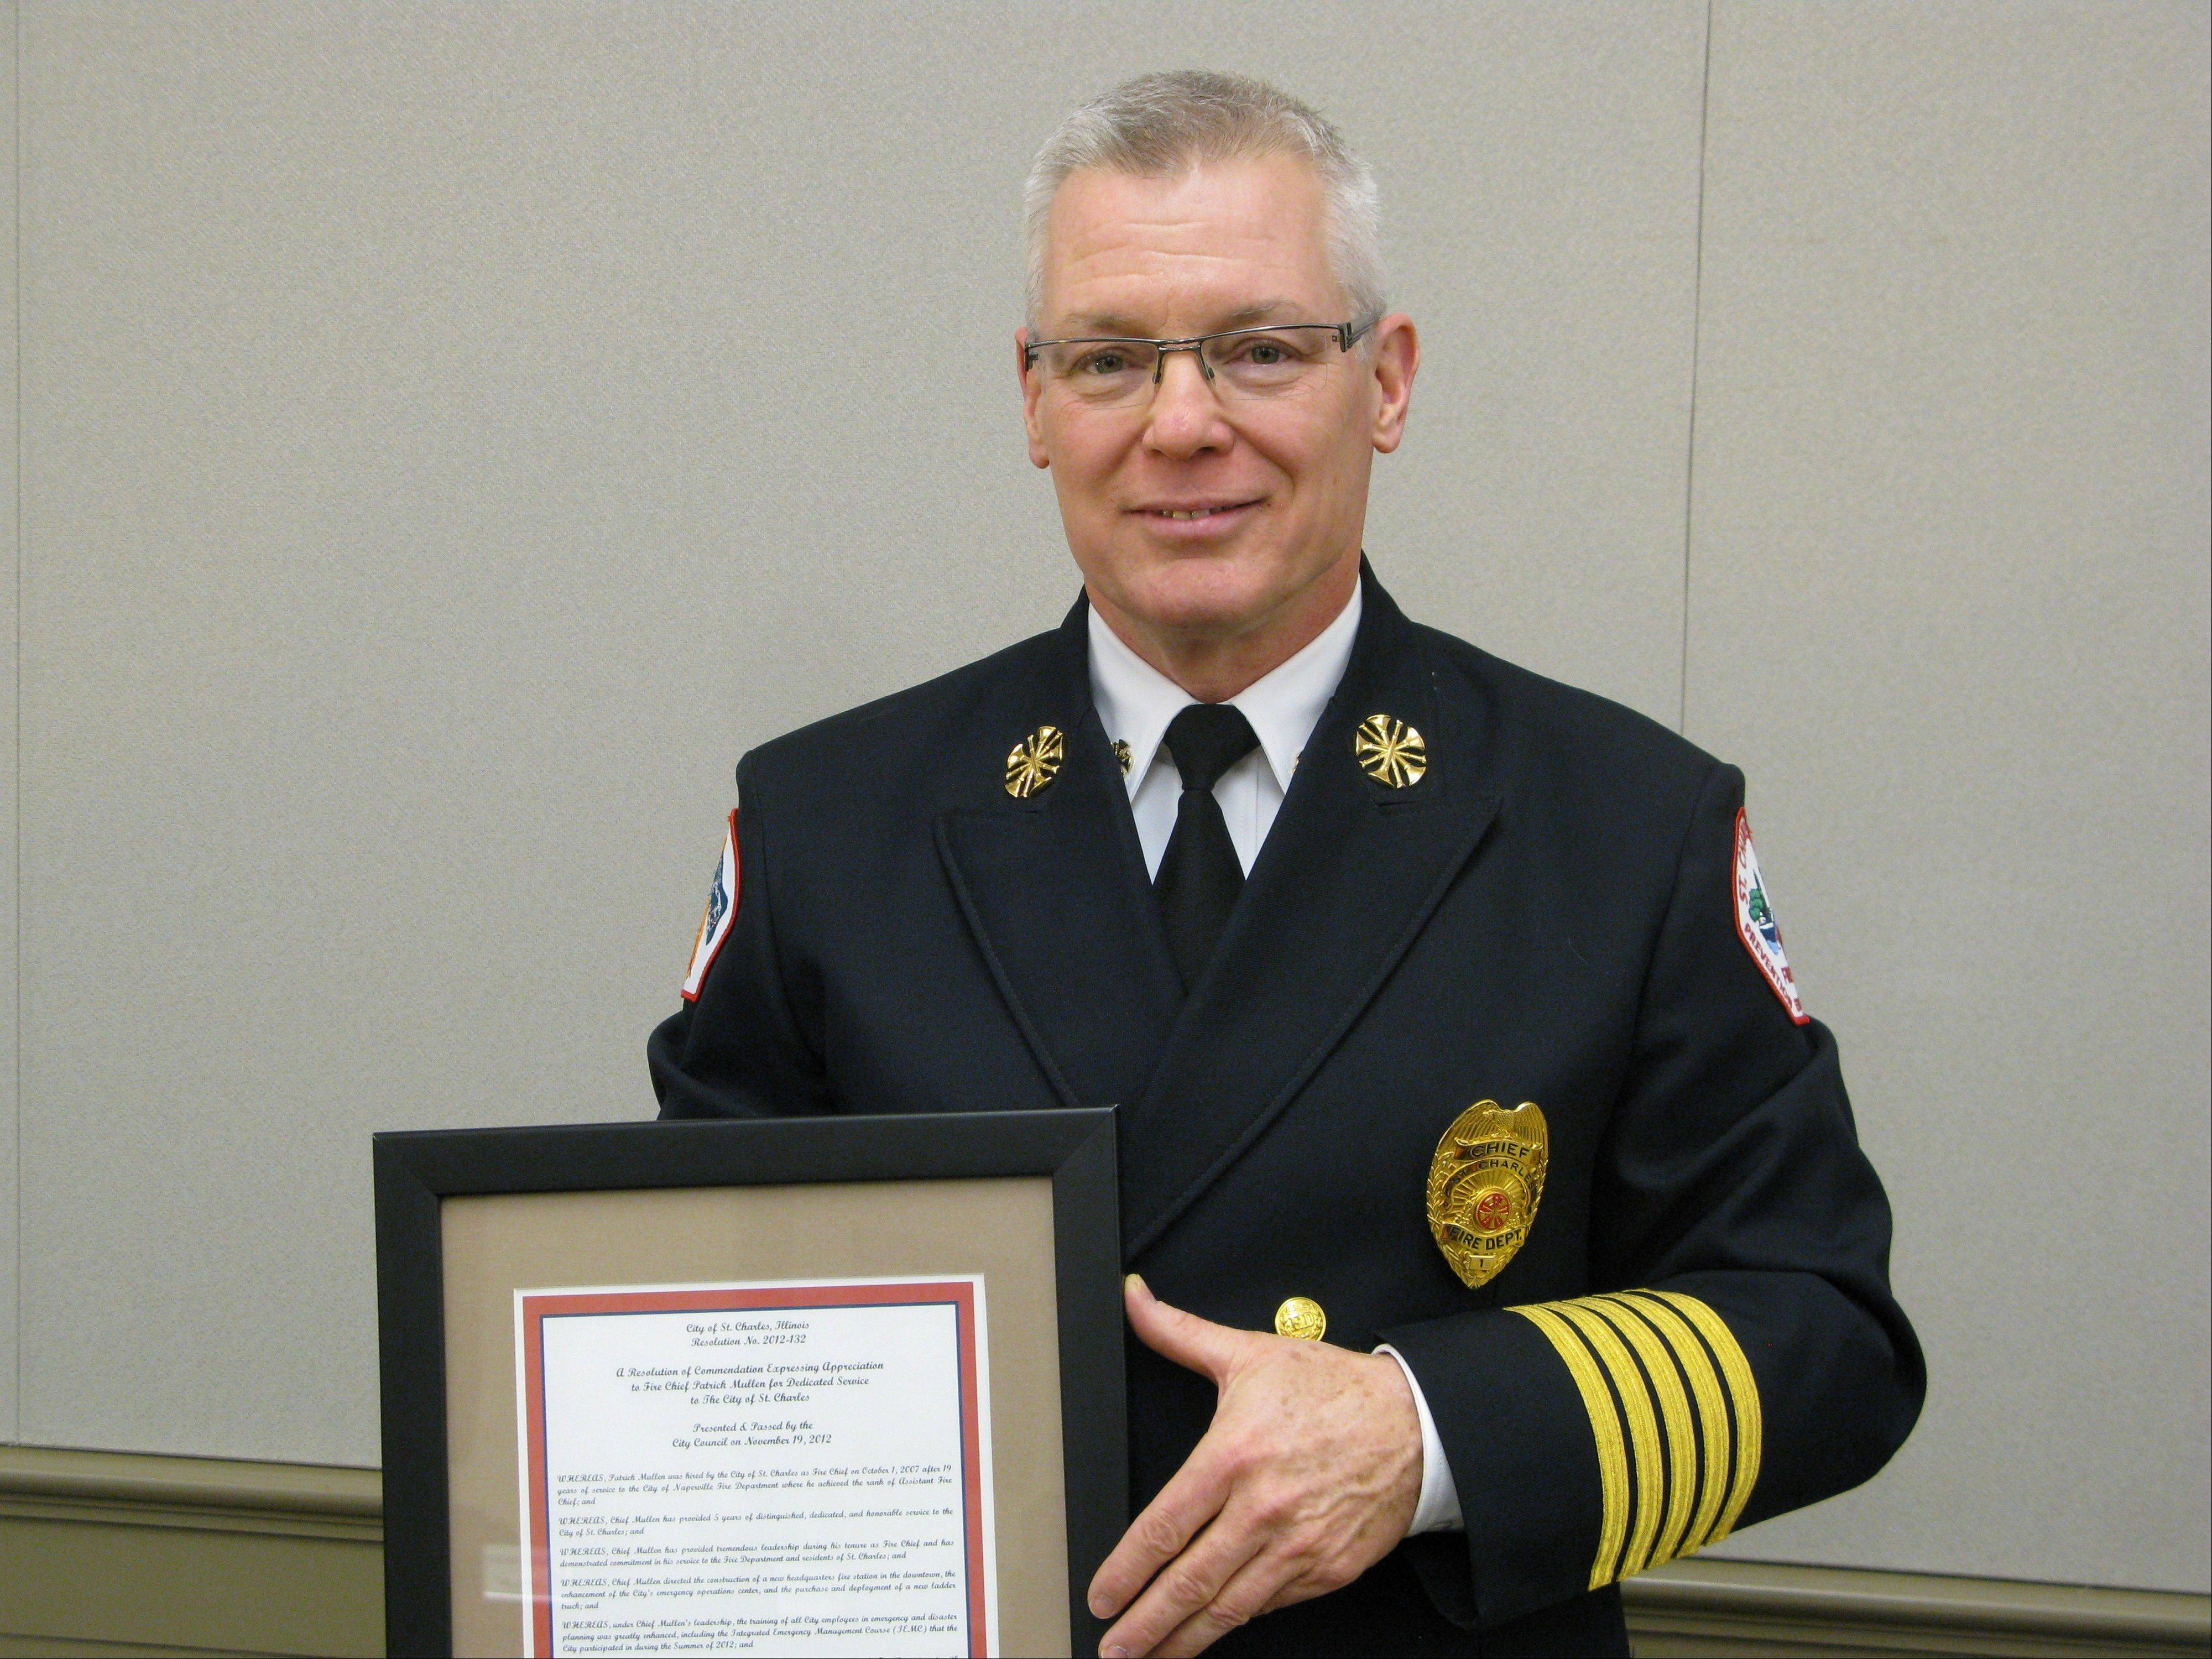 St. Charles Fire Chief Patrick Mullen is retiring at the end of November. A replacement has not yet been named.